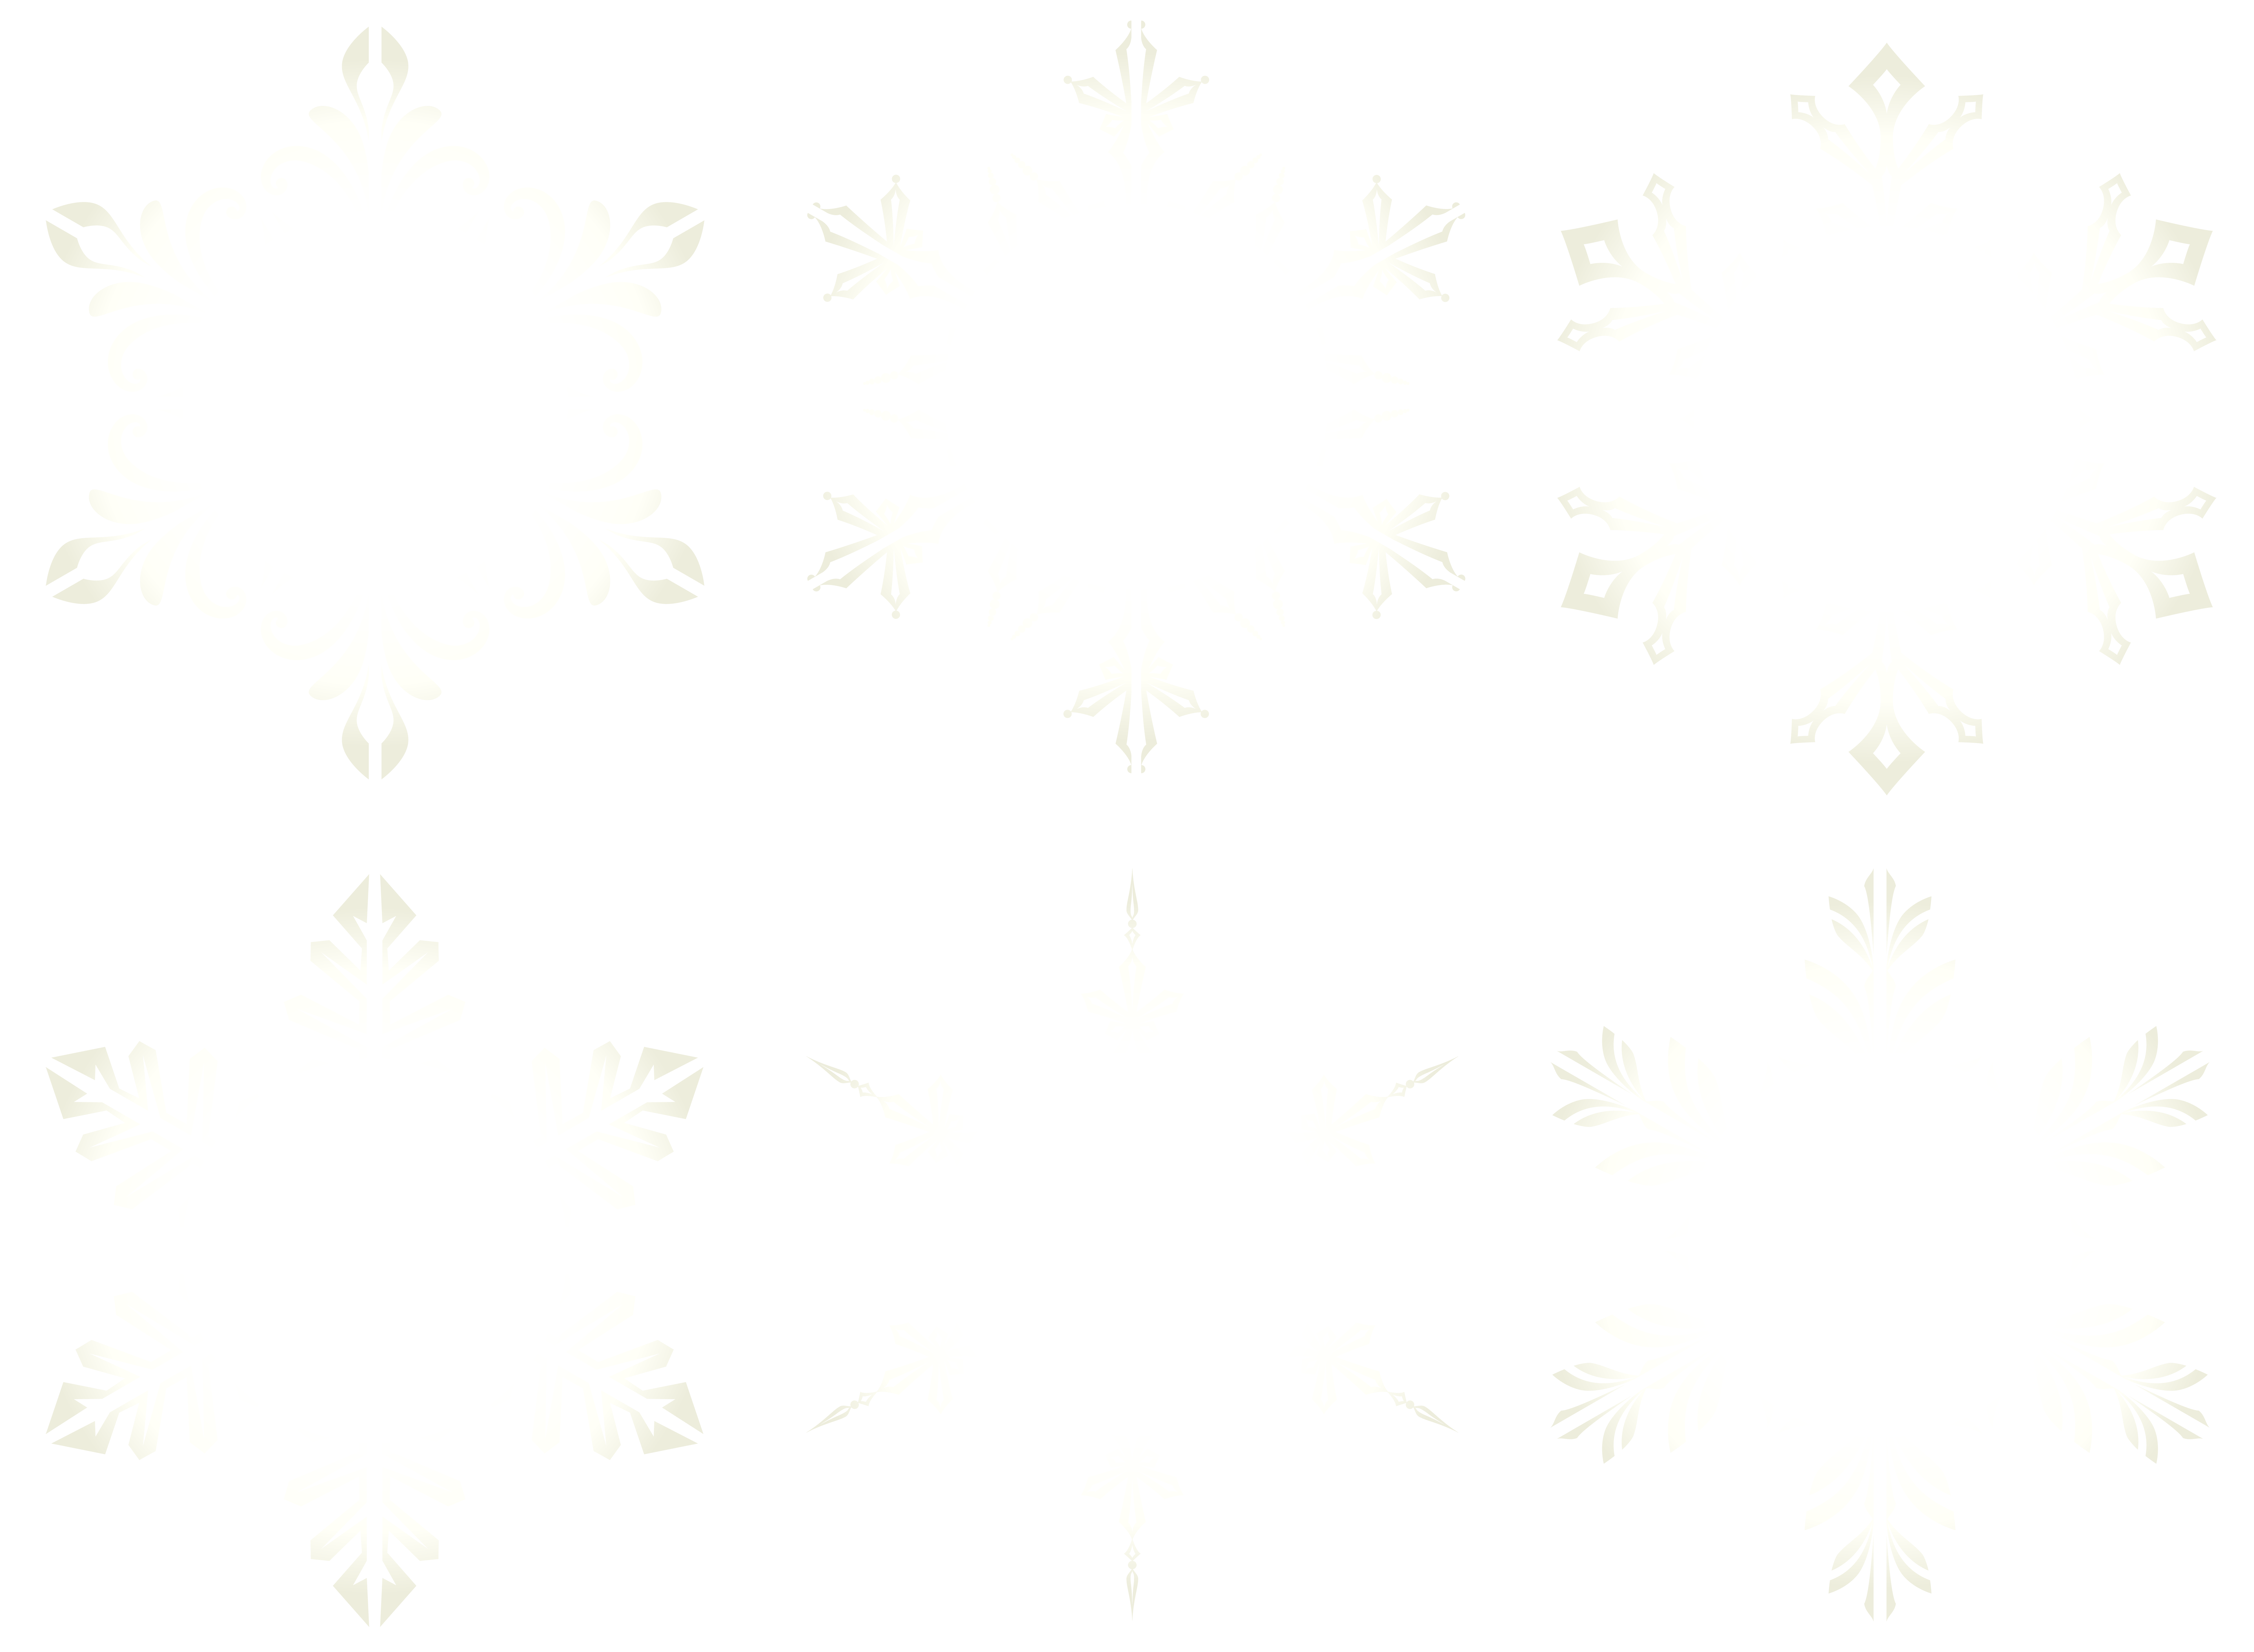 Brown snowflake free clipart picture royalty free library Snowflakes Transparent Clip Art | Gallery Yopriceville - High ... picture royalty free library